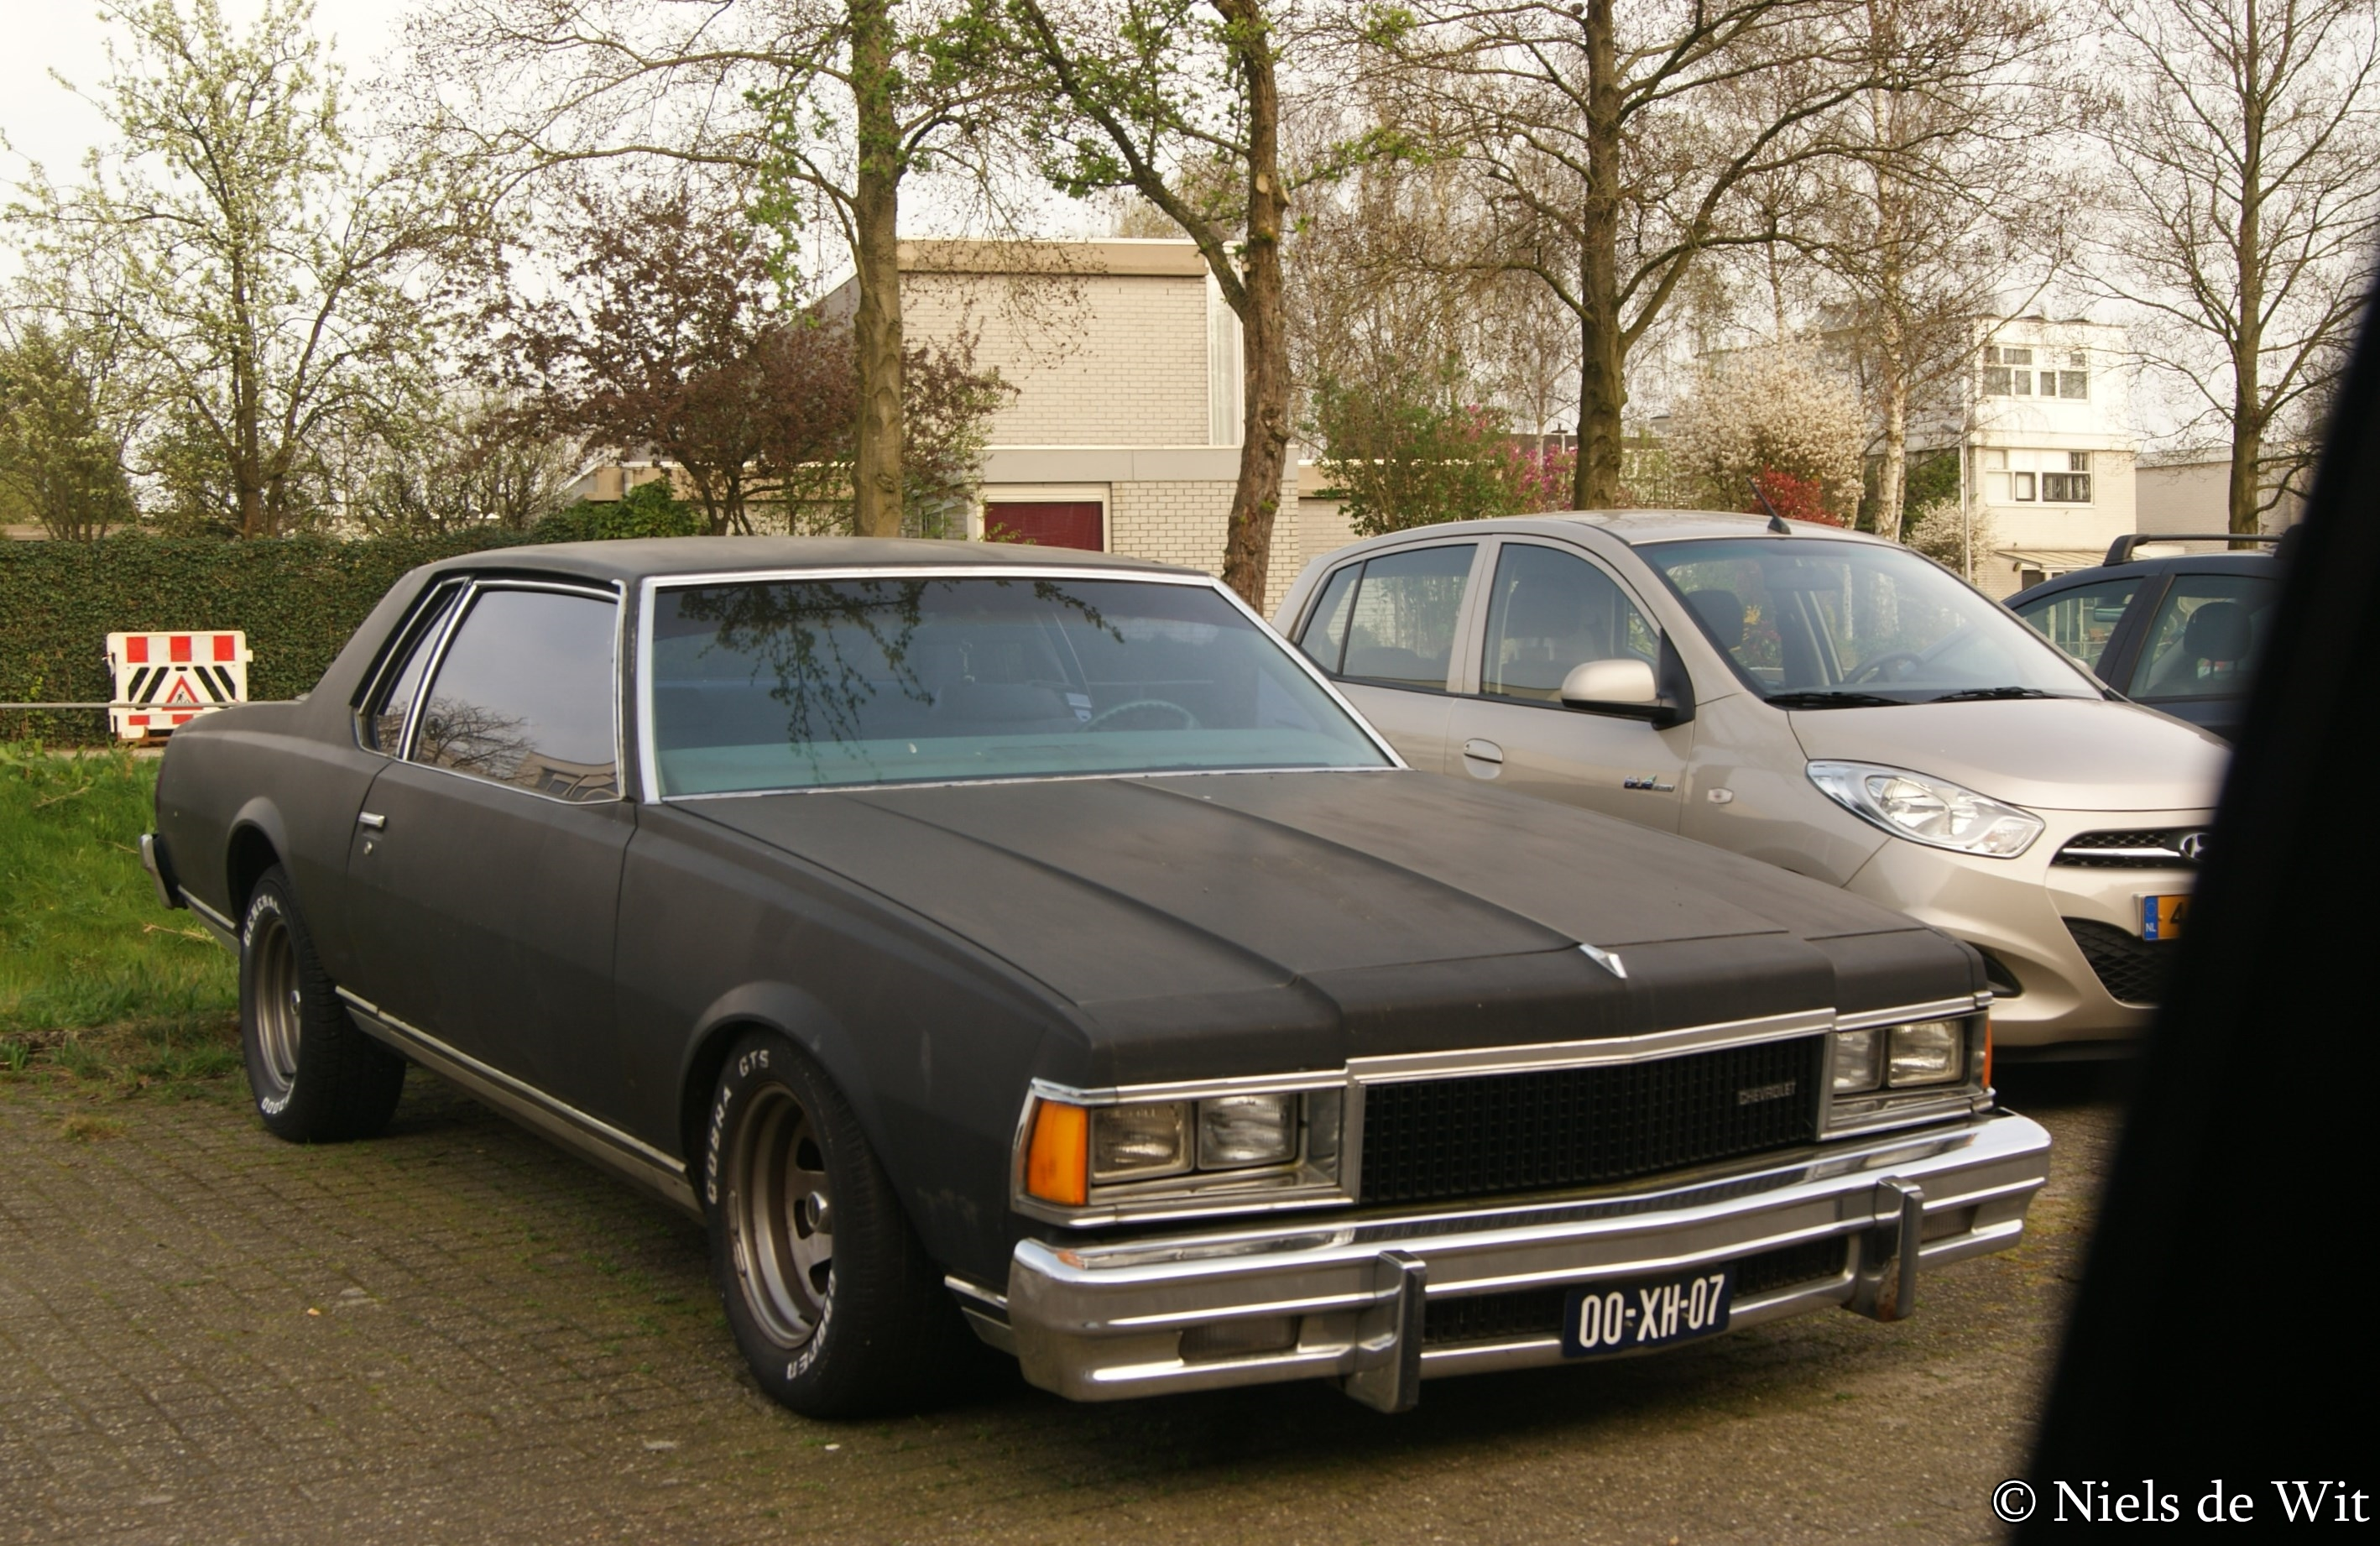 File:1978 Chevrolet Caprice Coupe (13545774355).jpg - Wikimedia Commons